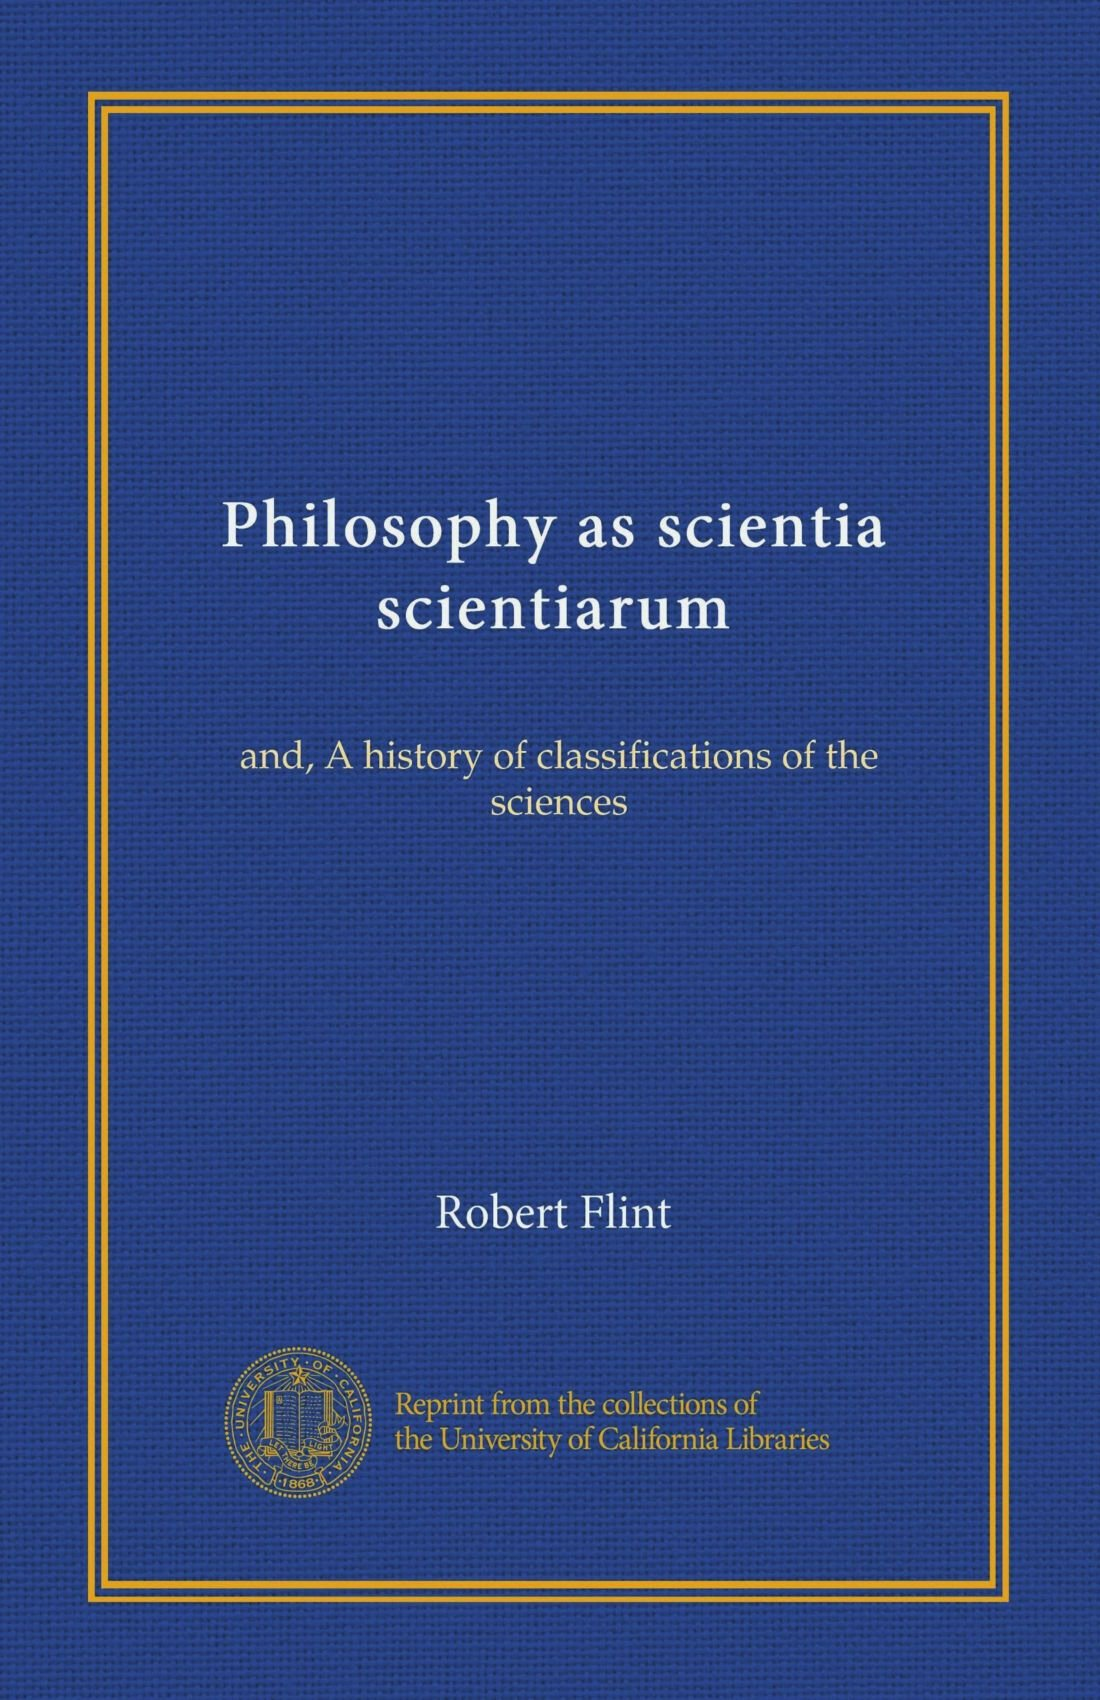 Philosophy as scientia scientiarum: and, A history of classifications of the sciences PDF